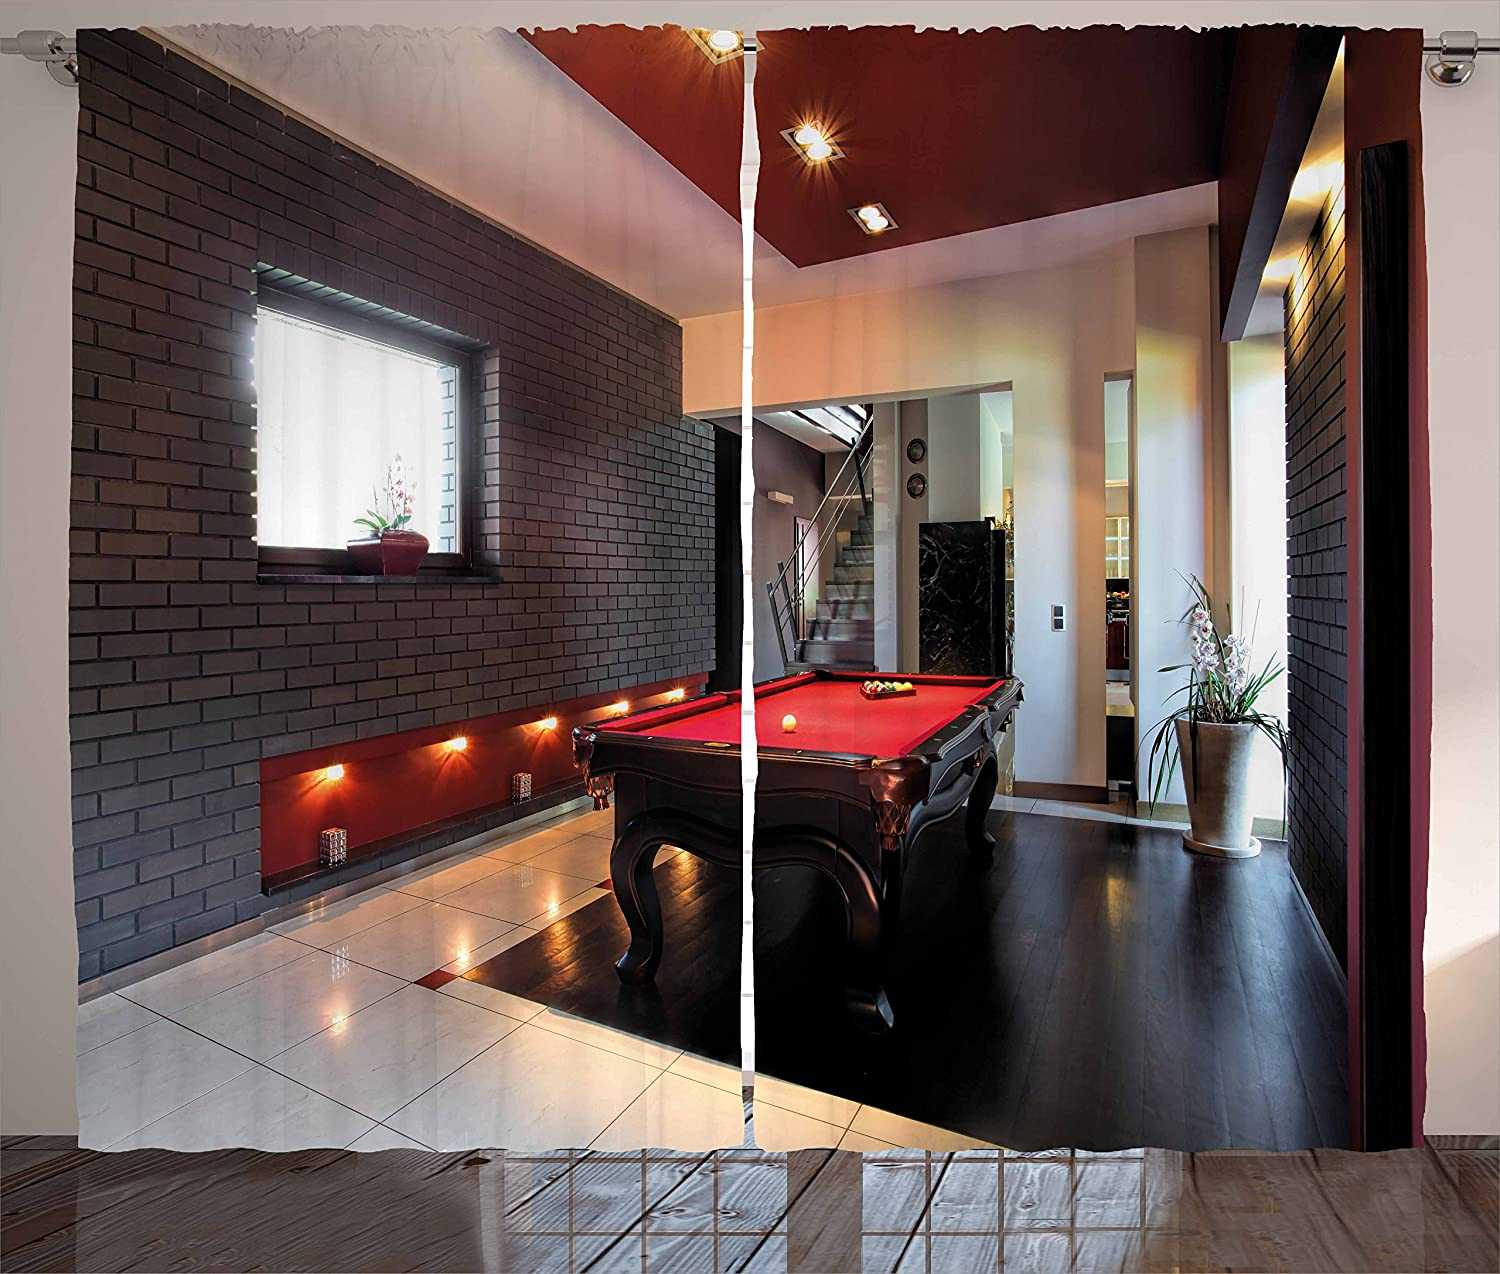 Ambesonne Modern Curtains, House with Snooker Table Hobby Pool Game Flat Furniture Leisure Time Print, Living Room Bedroom Window Drapes 2 Panel Set, 108